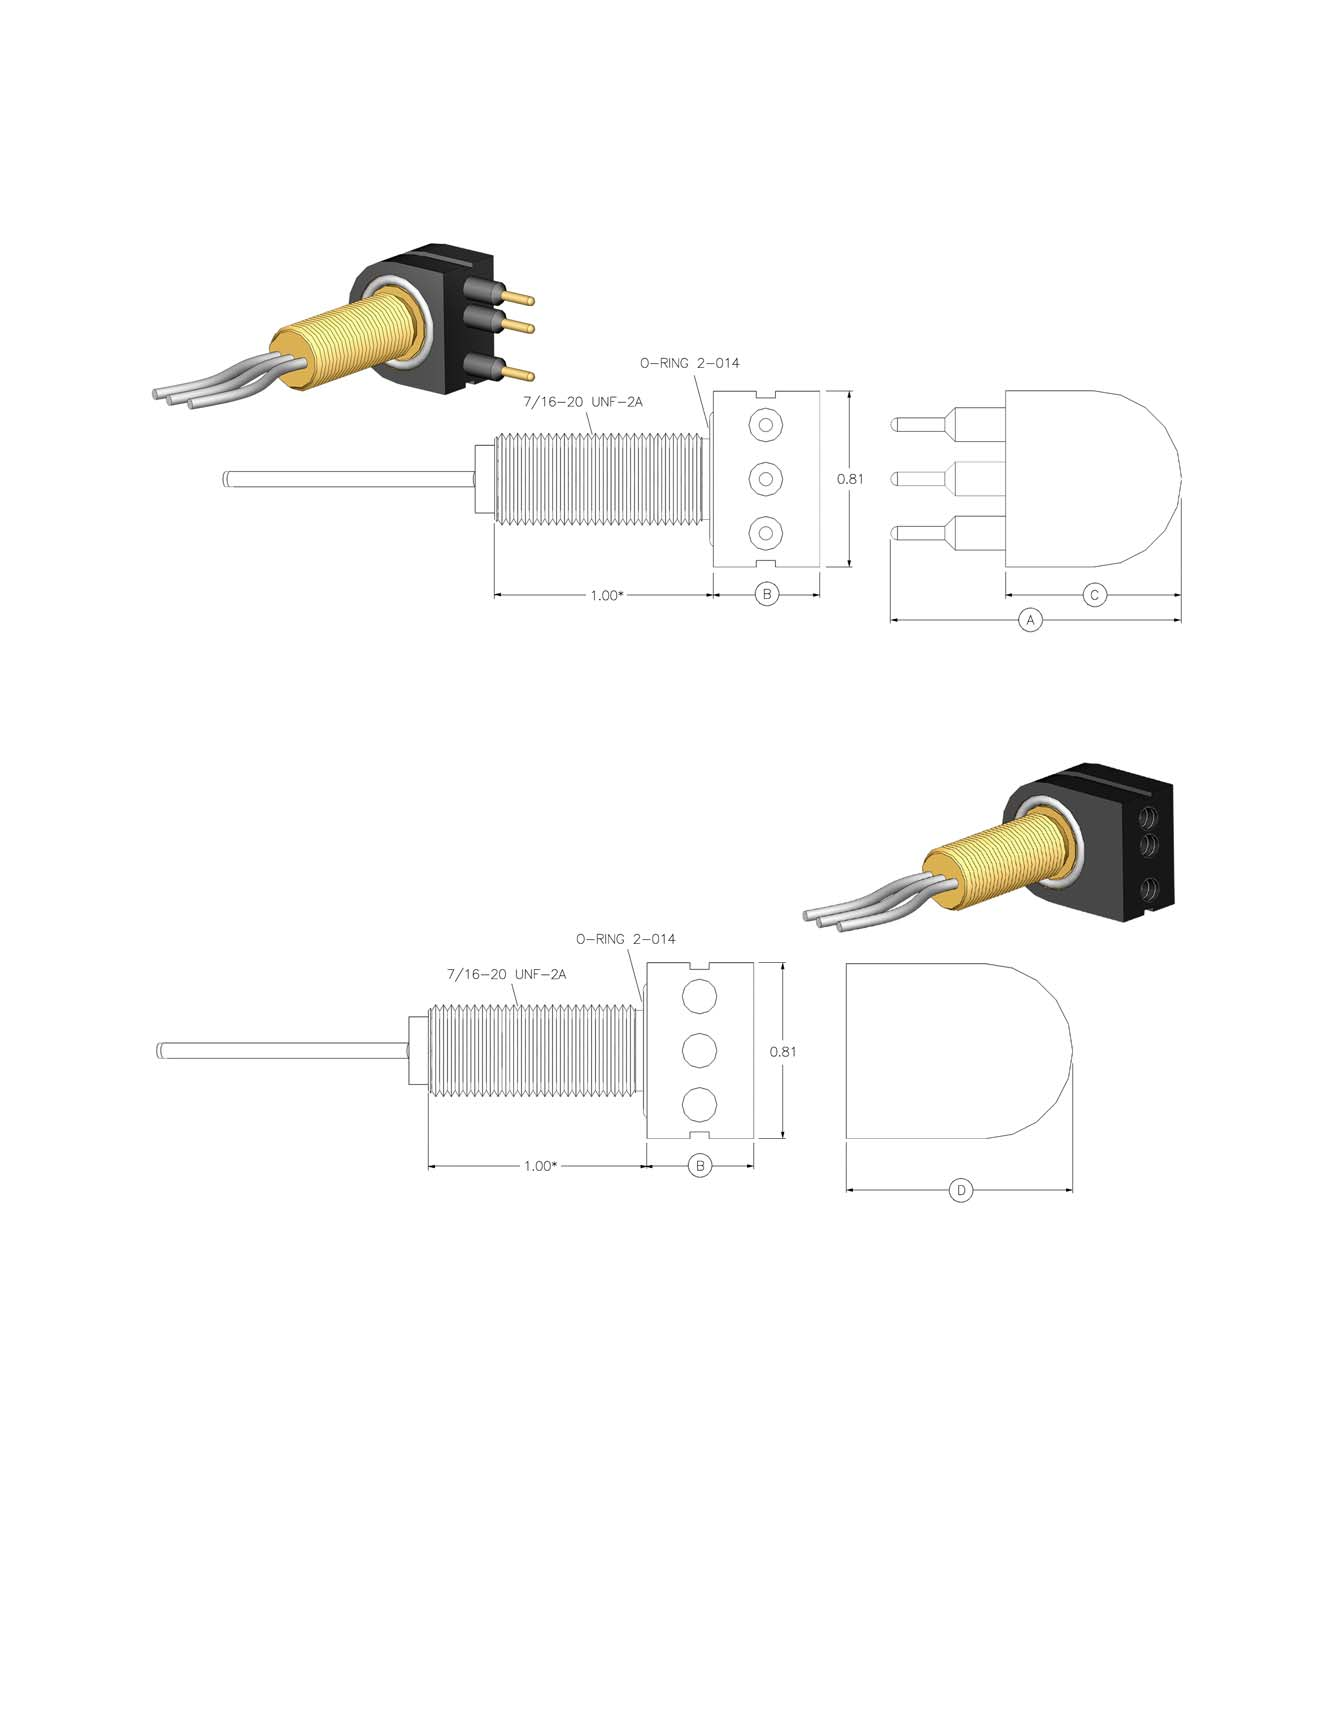 ^iijtbqflat SERIES DIMENSION DETAILS FAW-P-BC-R/A ^iijtbq Flat Bulkhead Connector Mates with FAW-S-MP Dummy Connector: FAW-S-MPD ^iijtbqseries FAW-S-BC-R/A ^iijtbq Flat Bulkhead Connector Mates with